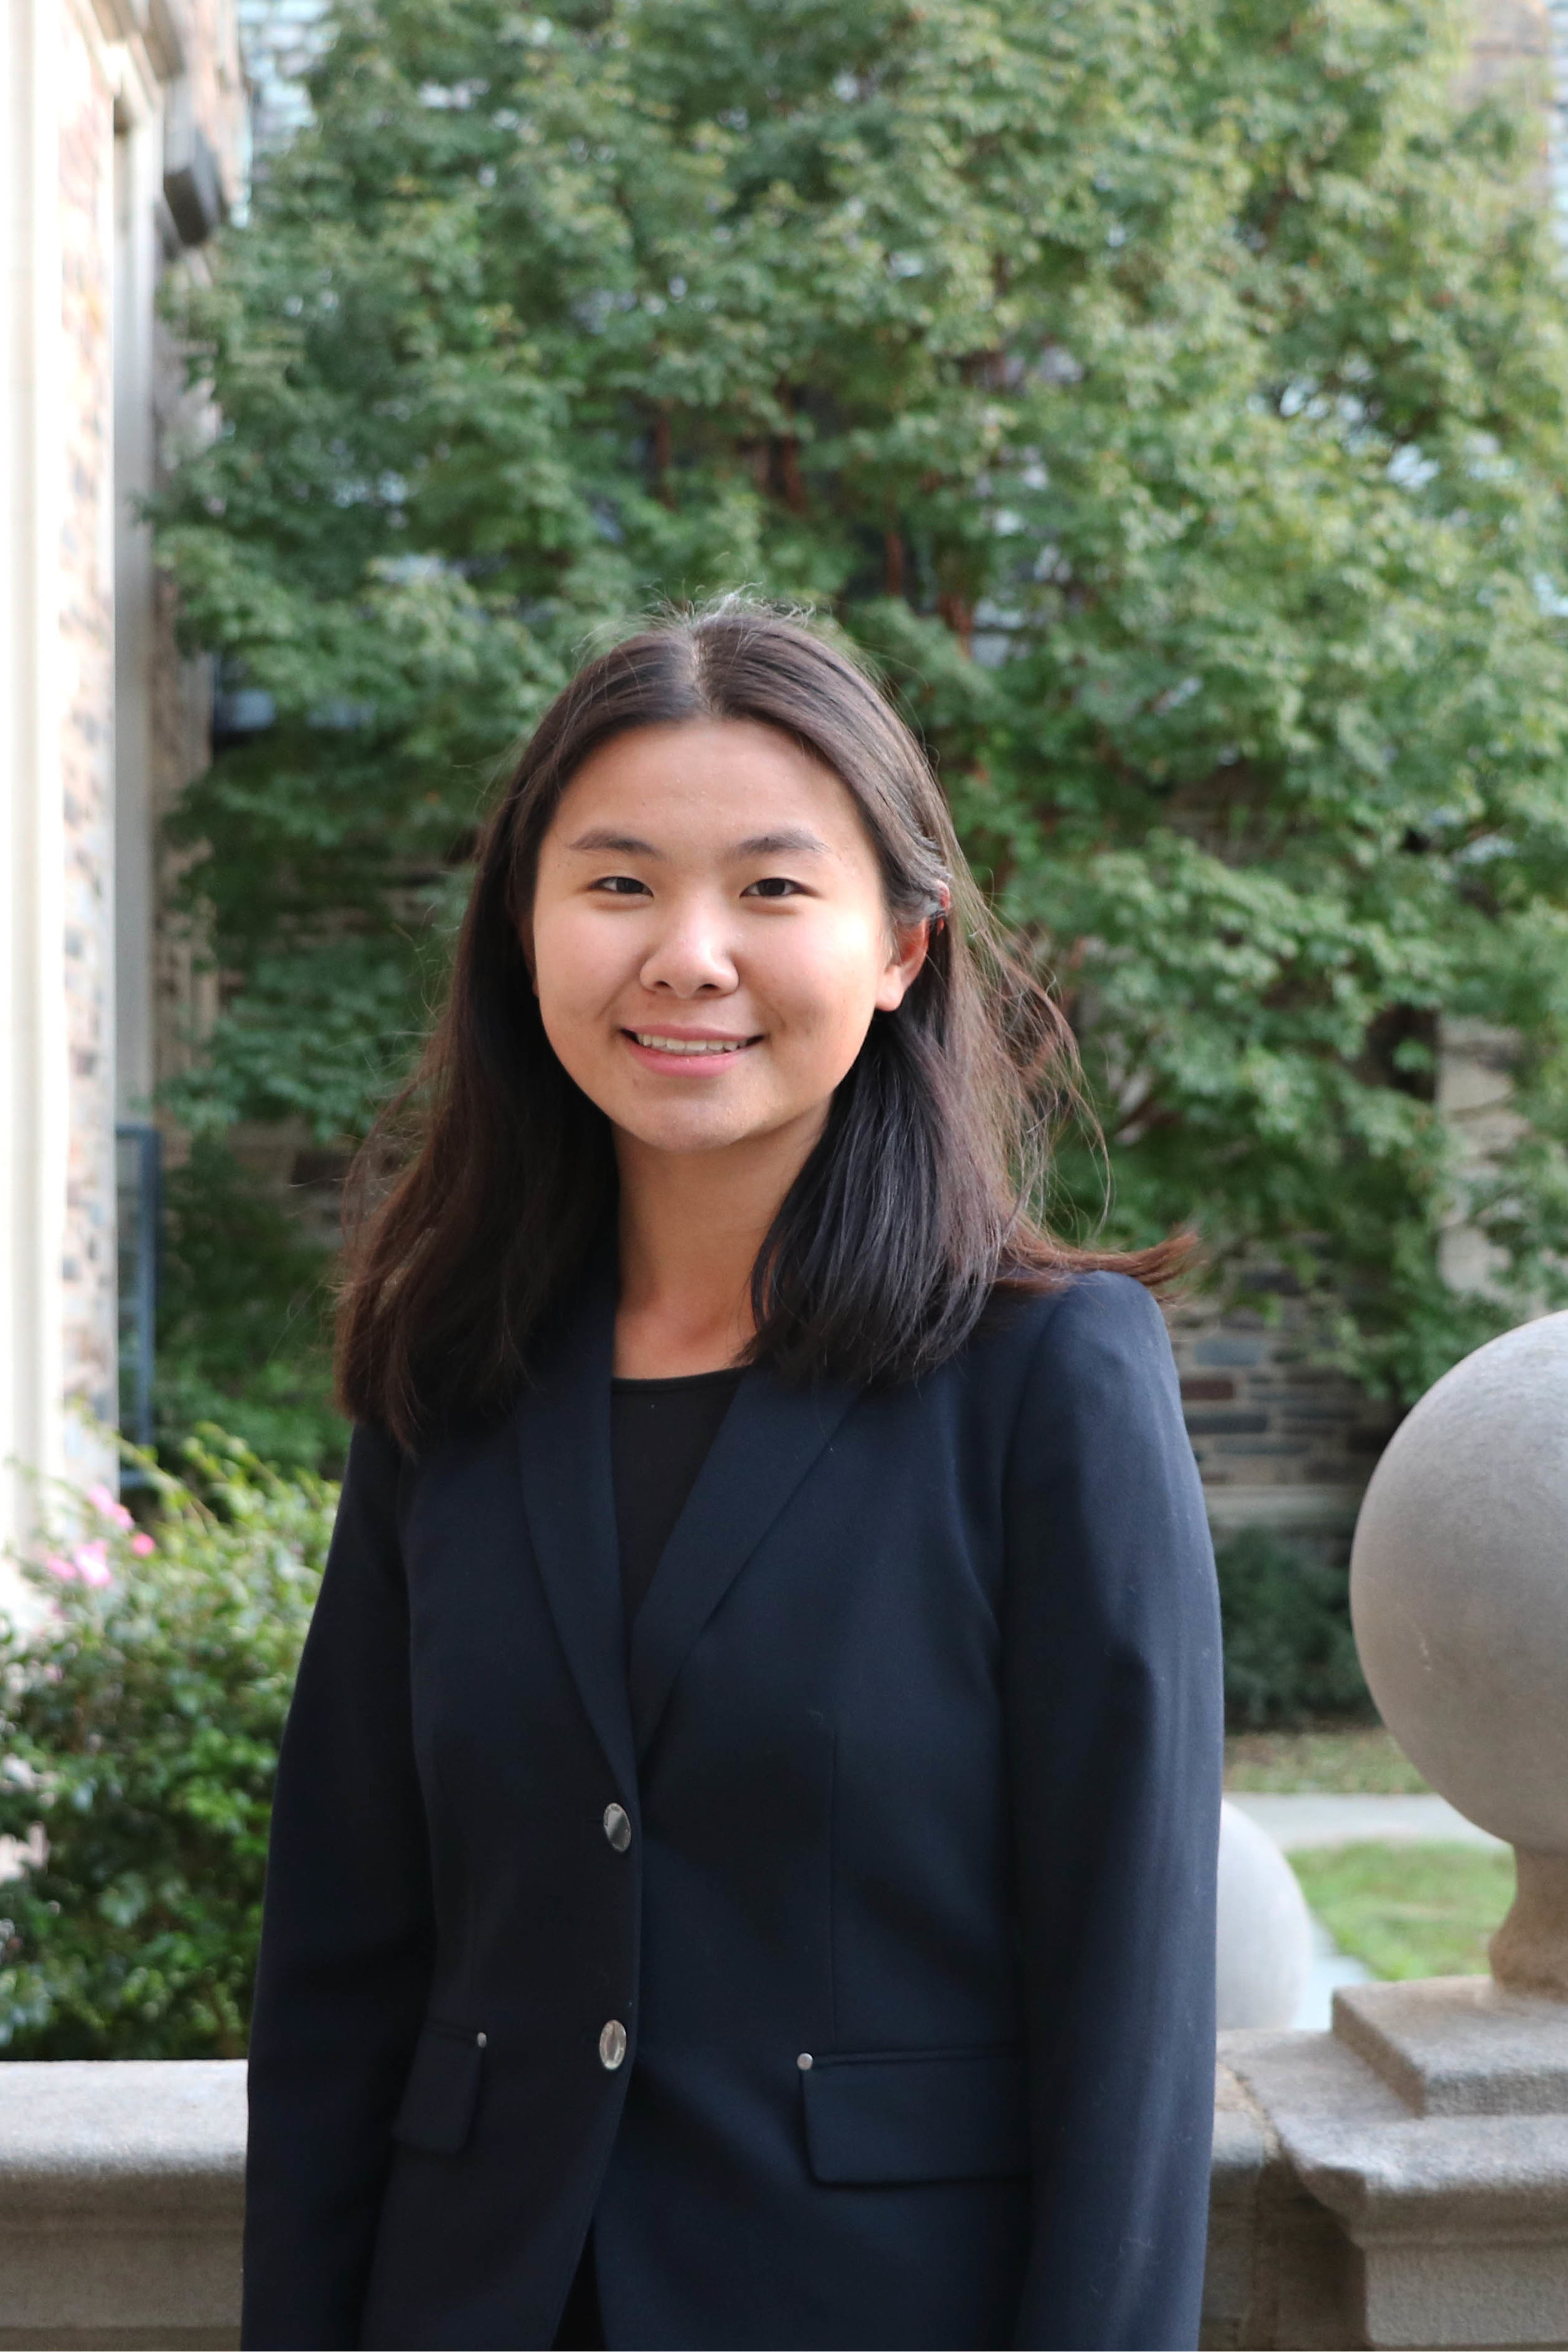 JACQUELINE HE   Jacqueline is a freshman from San Jose, California. She plans to major in Computer Science with potential certificates in Creative Writing and Finance. Her interests primarily lie in the intersection of personal and political narratives that arise from life in contemporary China. In addition to PUCC, Jacqueline also edits for Unfound: The Princeton Journal of Asian American Studies and serves as a Quantitative Strategist for Princeton Effective Altruism Investments. She currently resides in Wilson College.